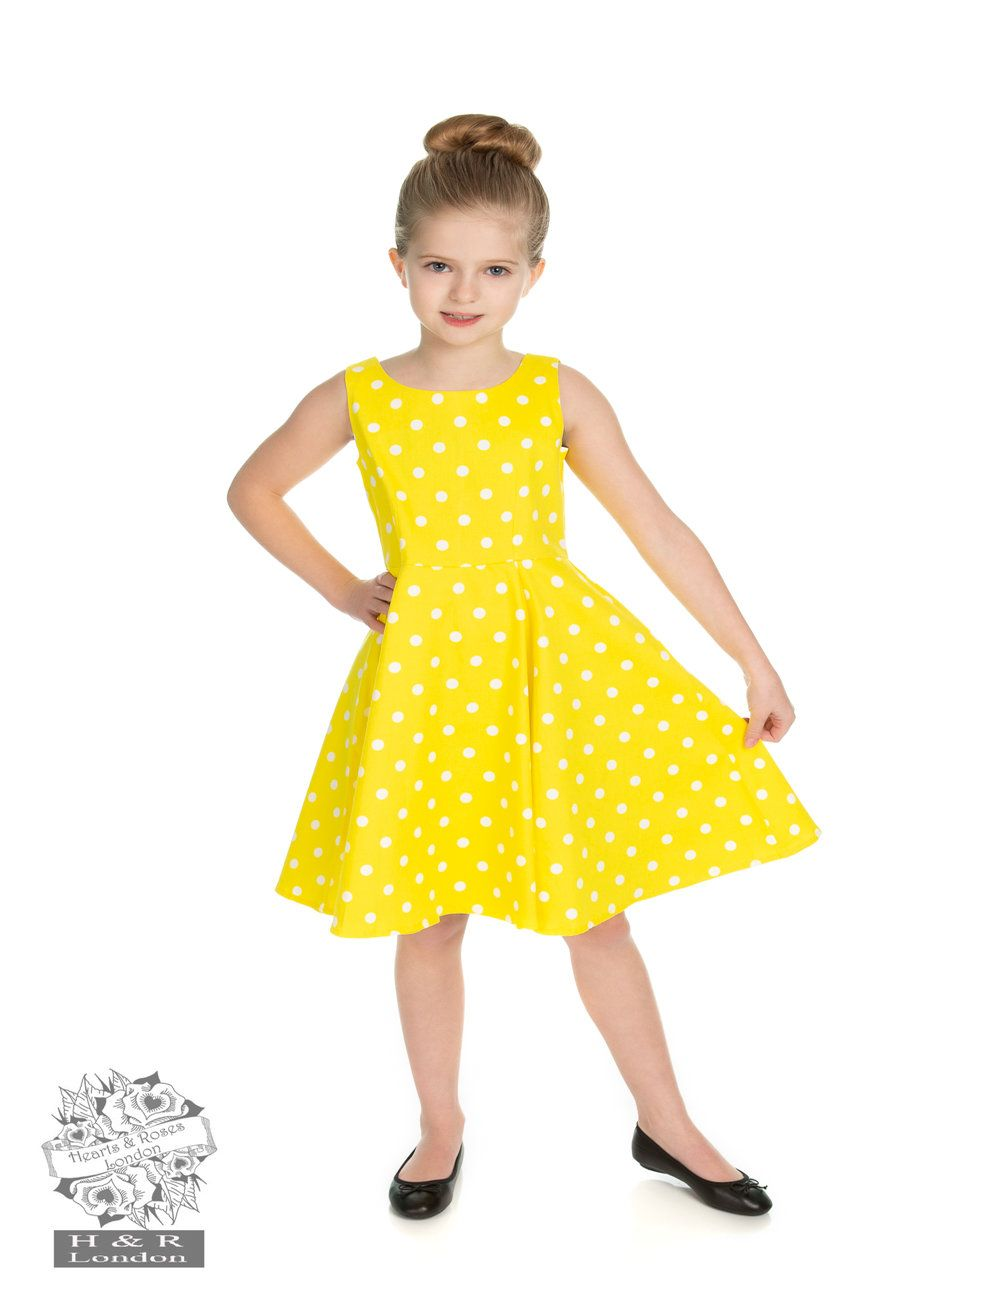 H&R Children's Cindy Polka Dot Swing Dress in Yellow 3-4 Years